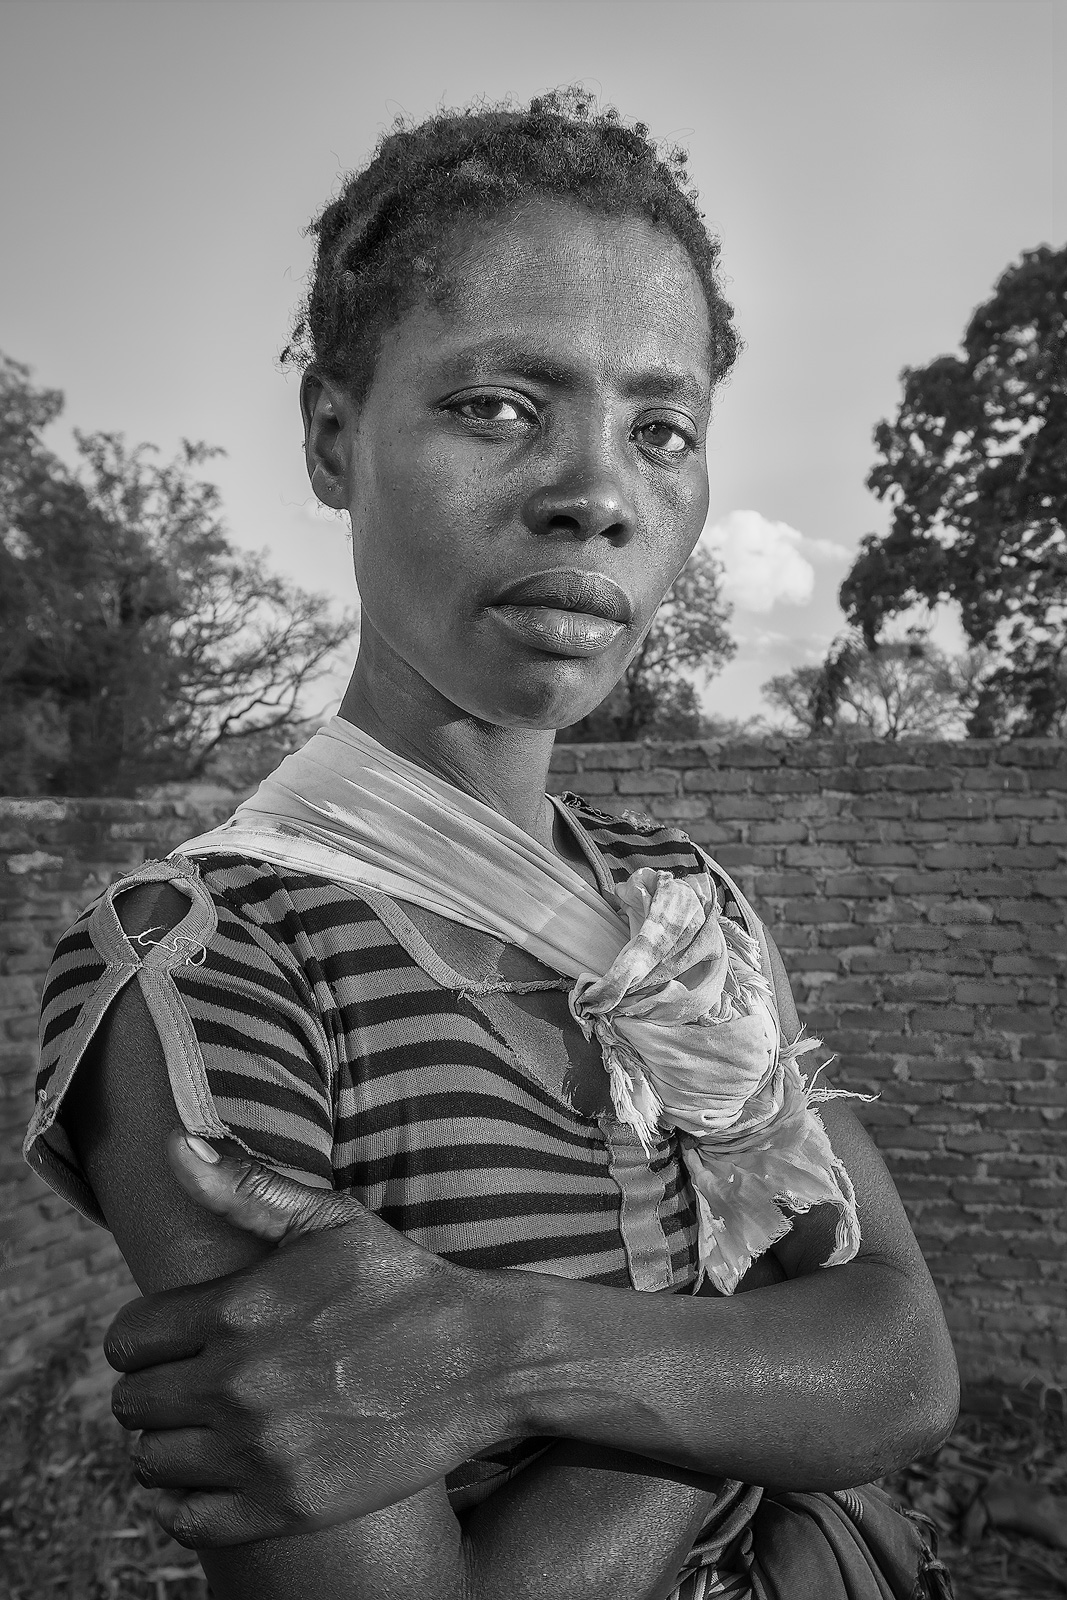 africa,african,baby,black,child,daughter,environmental portait,evening,family,female,girl,infant,juvenile,lady,malawi,malawian,mom,mother,portrait,woman,young, photo